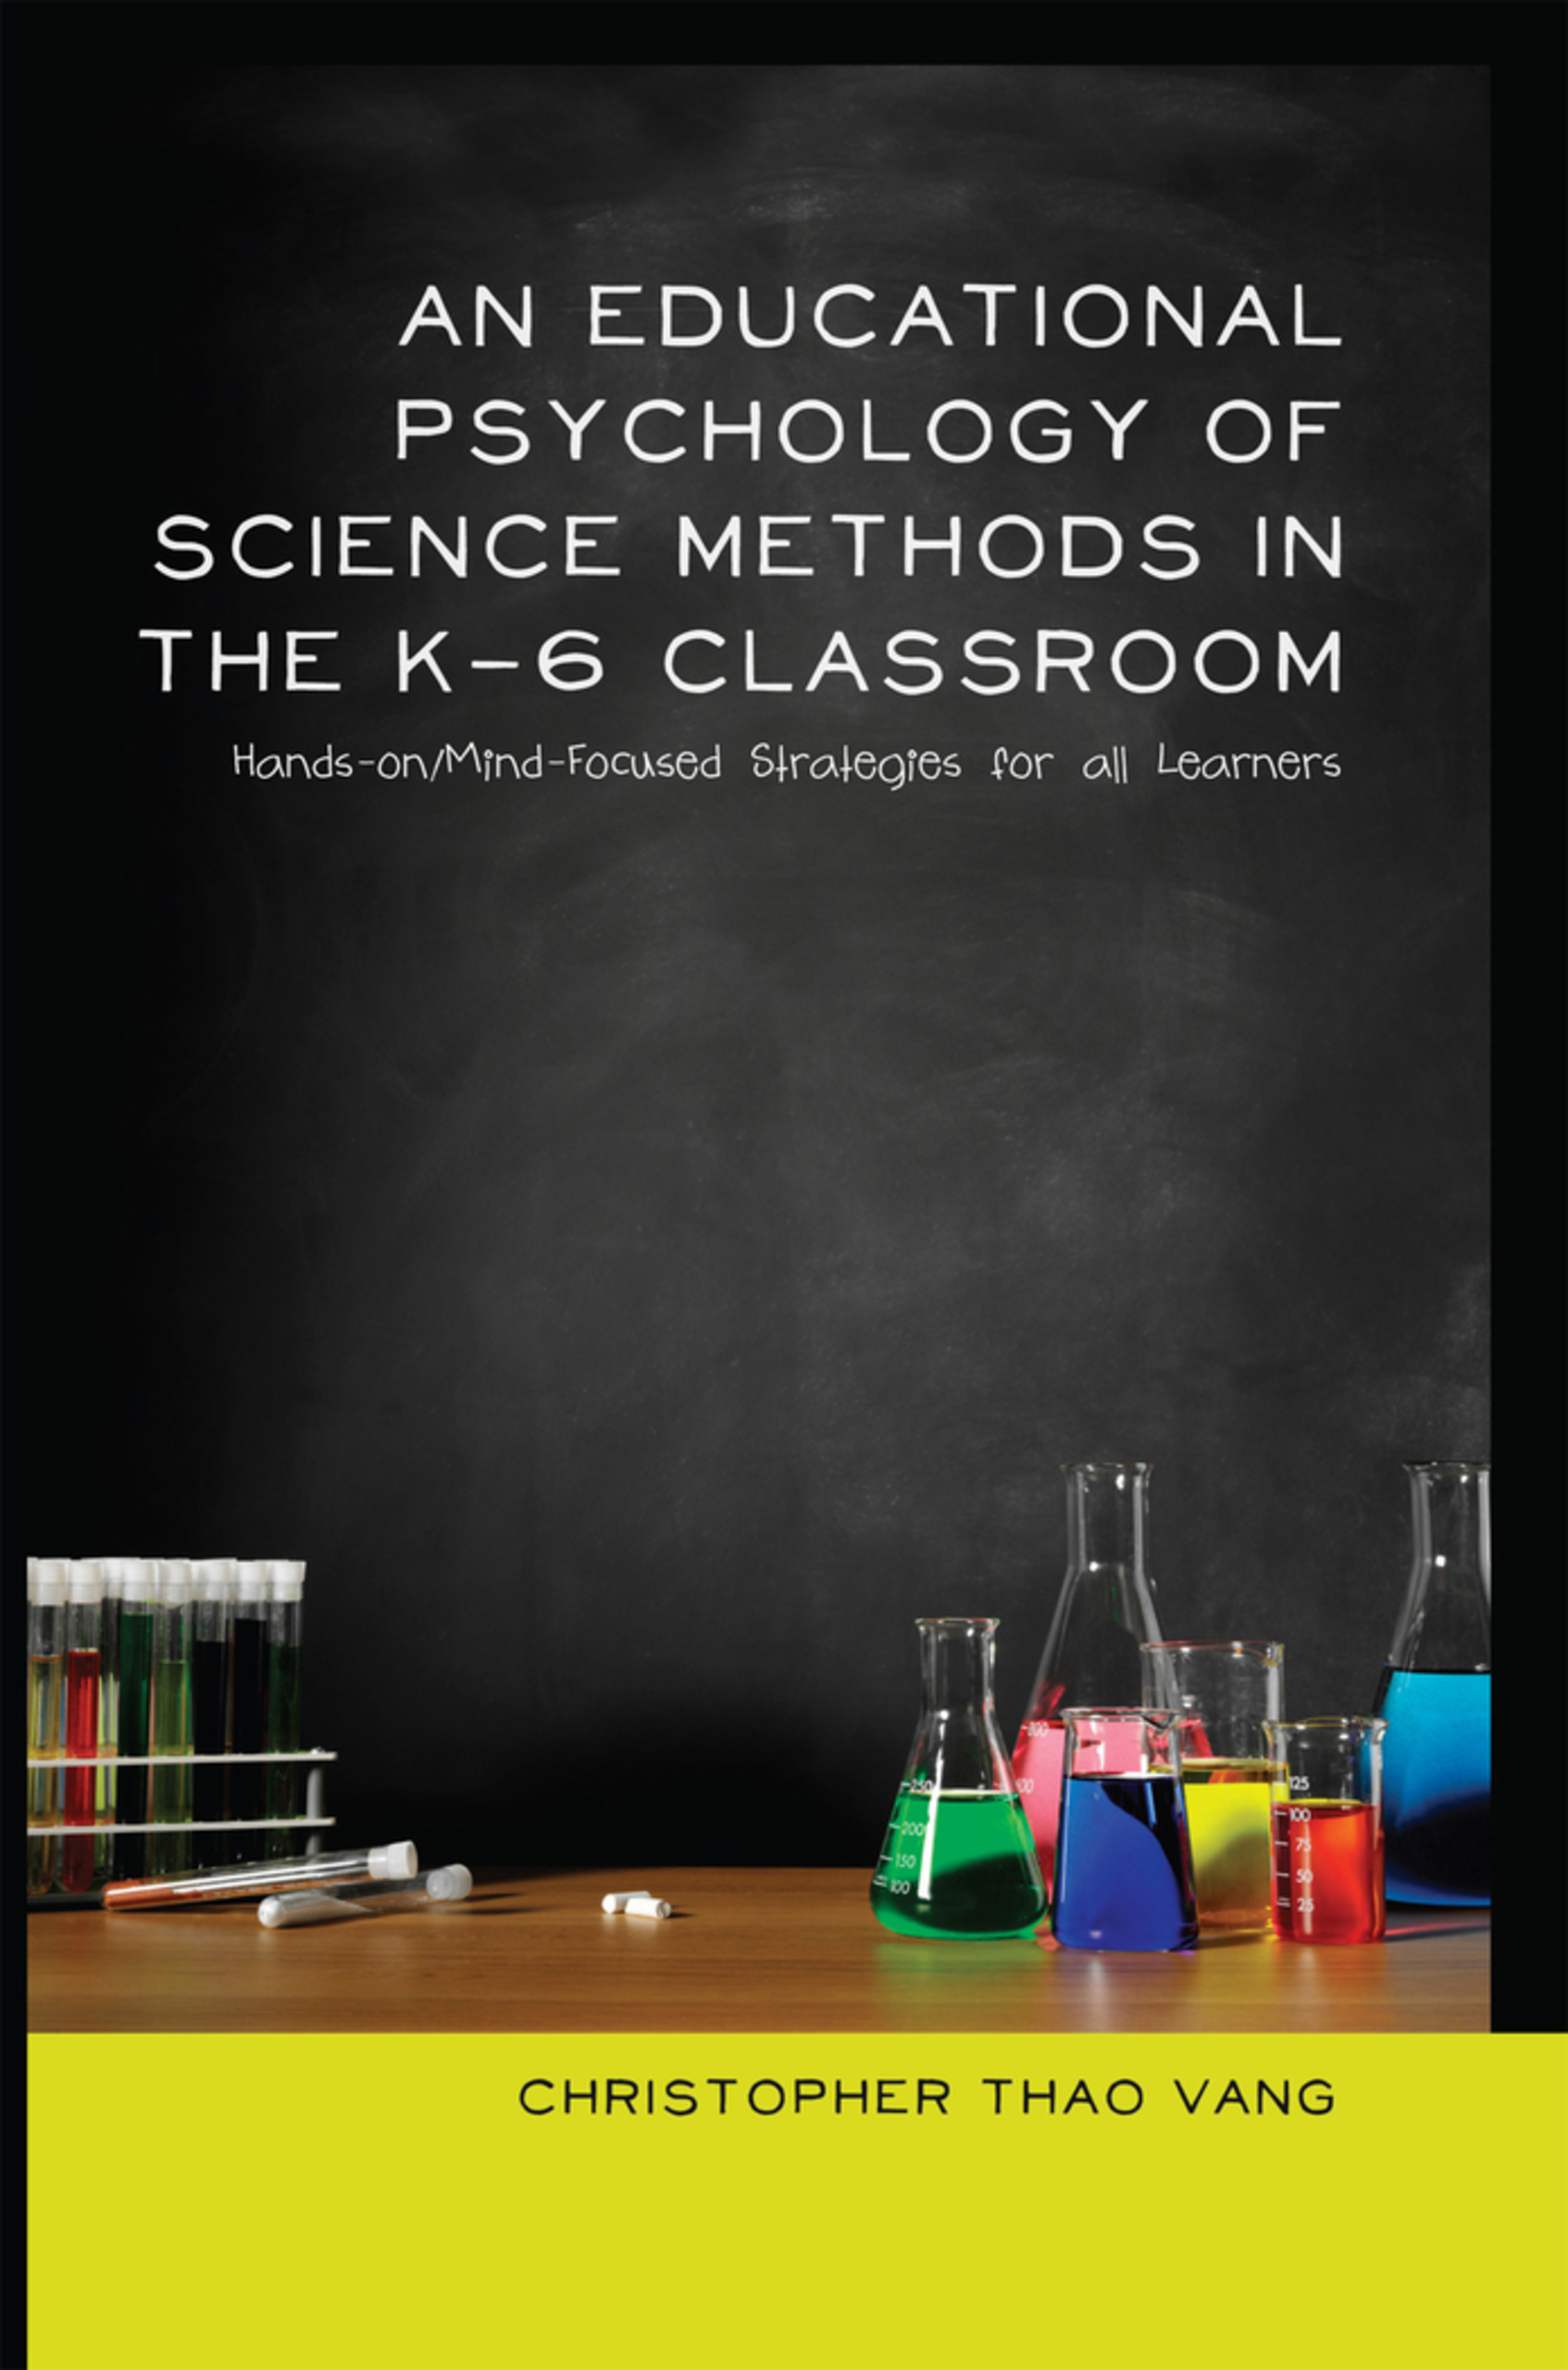 Title: An Educational Psychology of Science Methods in the K-6 Classroom